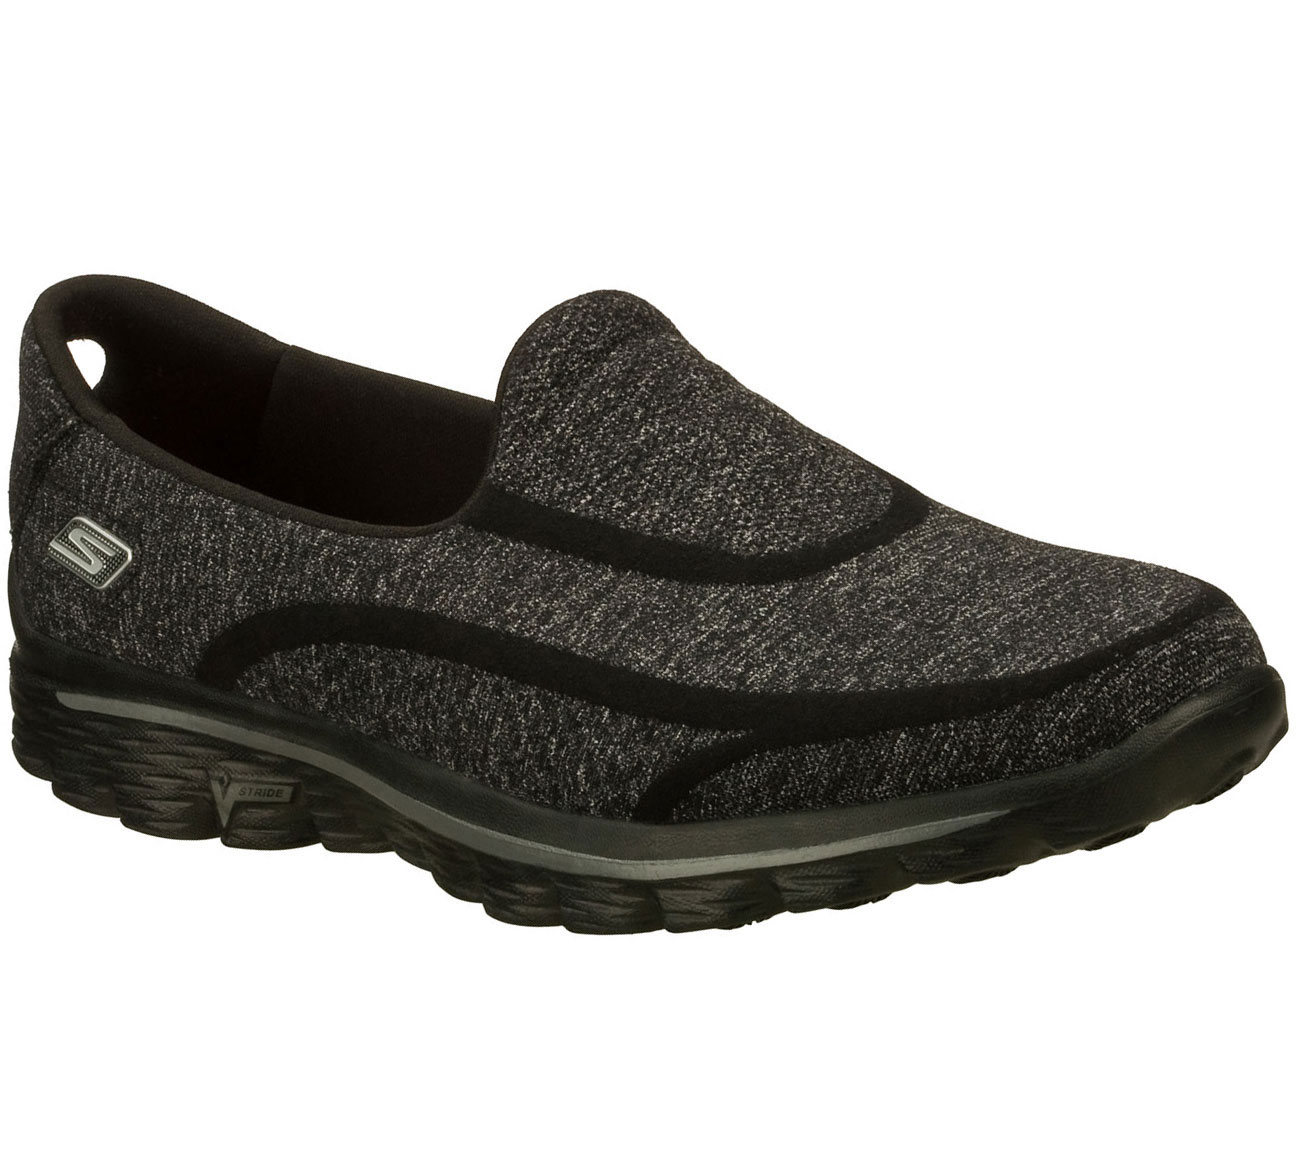 Skechers Sock Shoes Mens